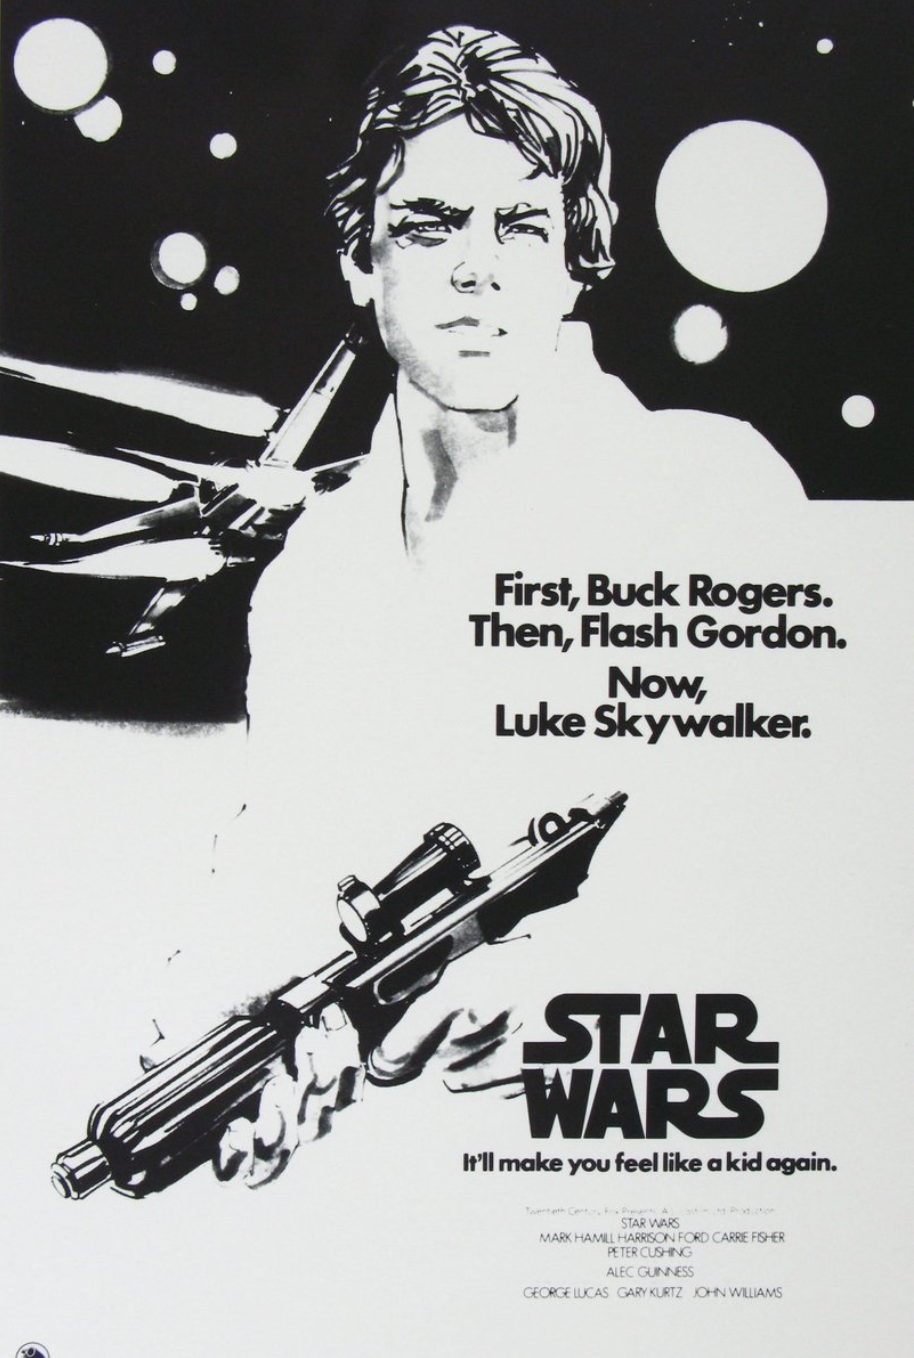 mark-hamill-shares-some-very-early-poster-concepts-for-star-wars-that-tried-to-explain-the-film1